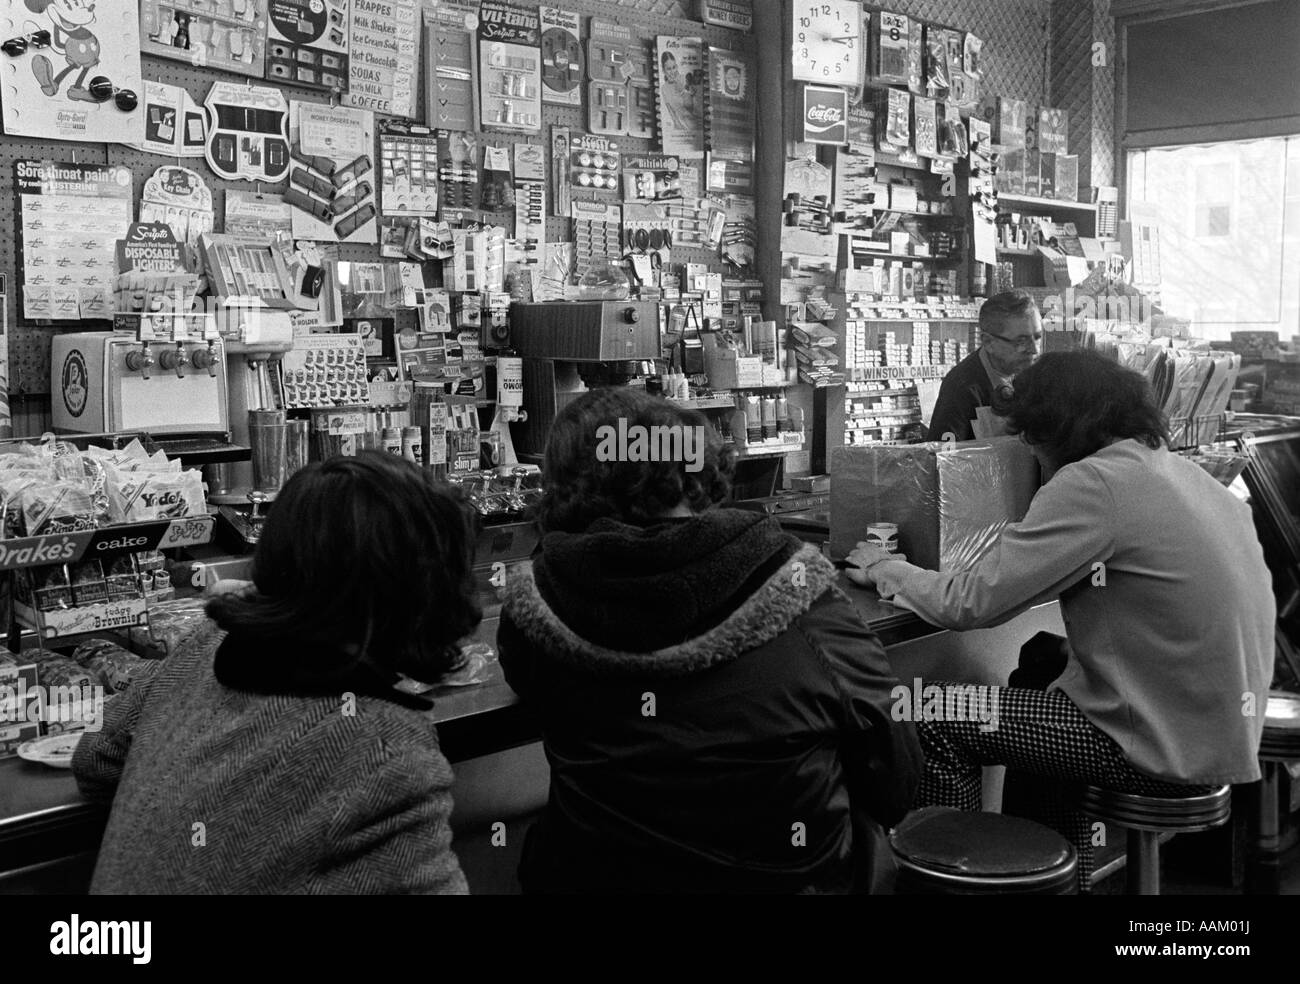 1970s 3 TEEN BOYS WITH BACKS TO CAMERA SITTING ON STOOLS AT THE COUNTER OF A SODA FOUNTAIN SHOP Stock Photo